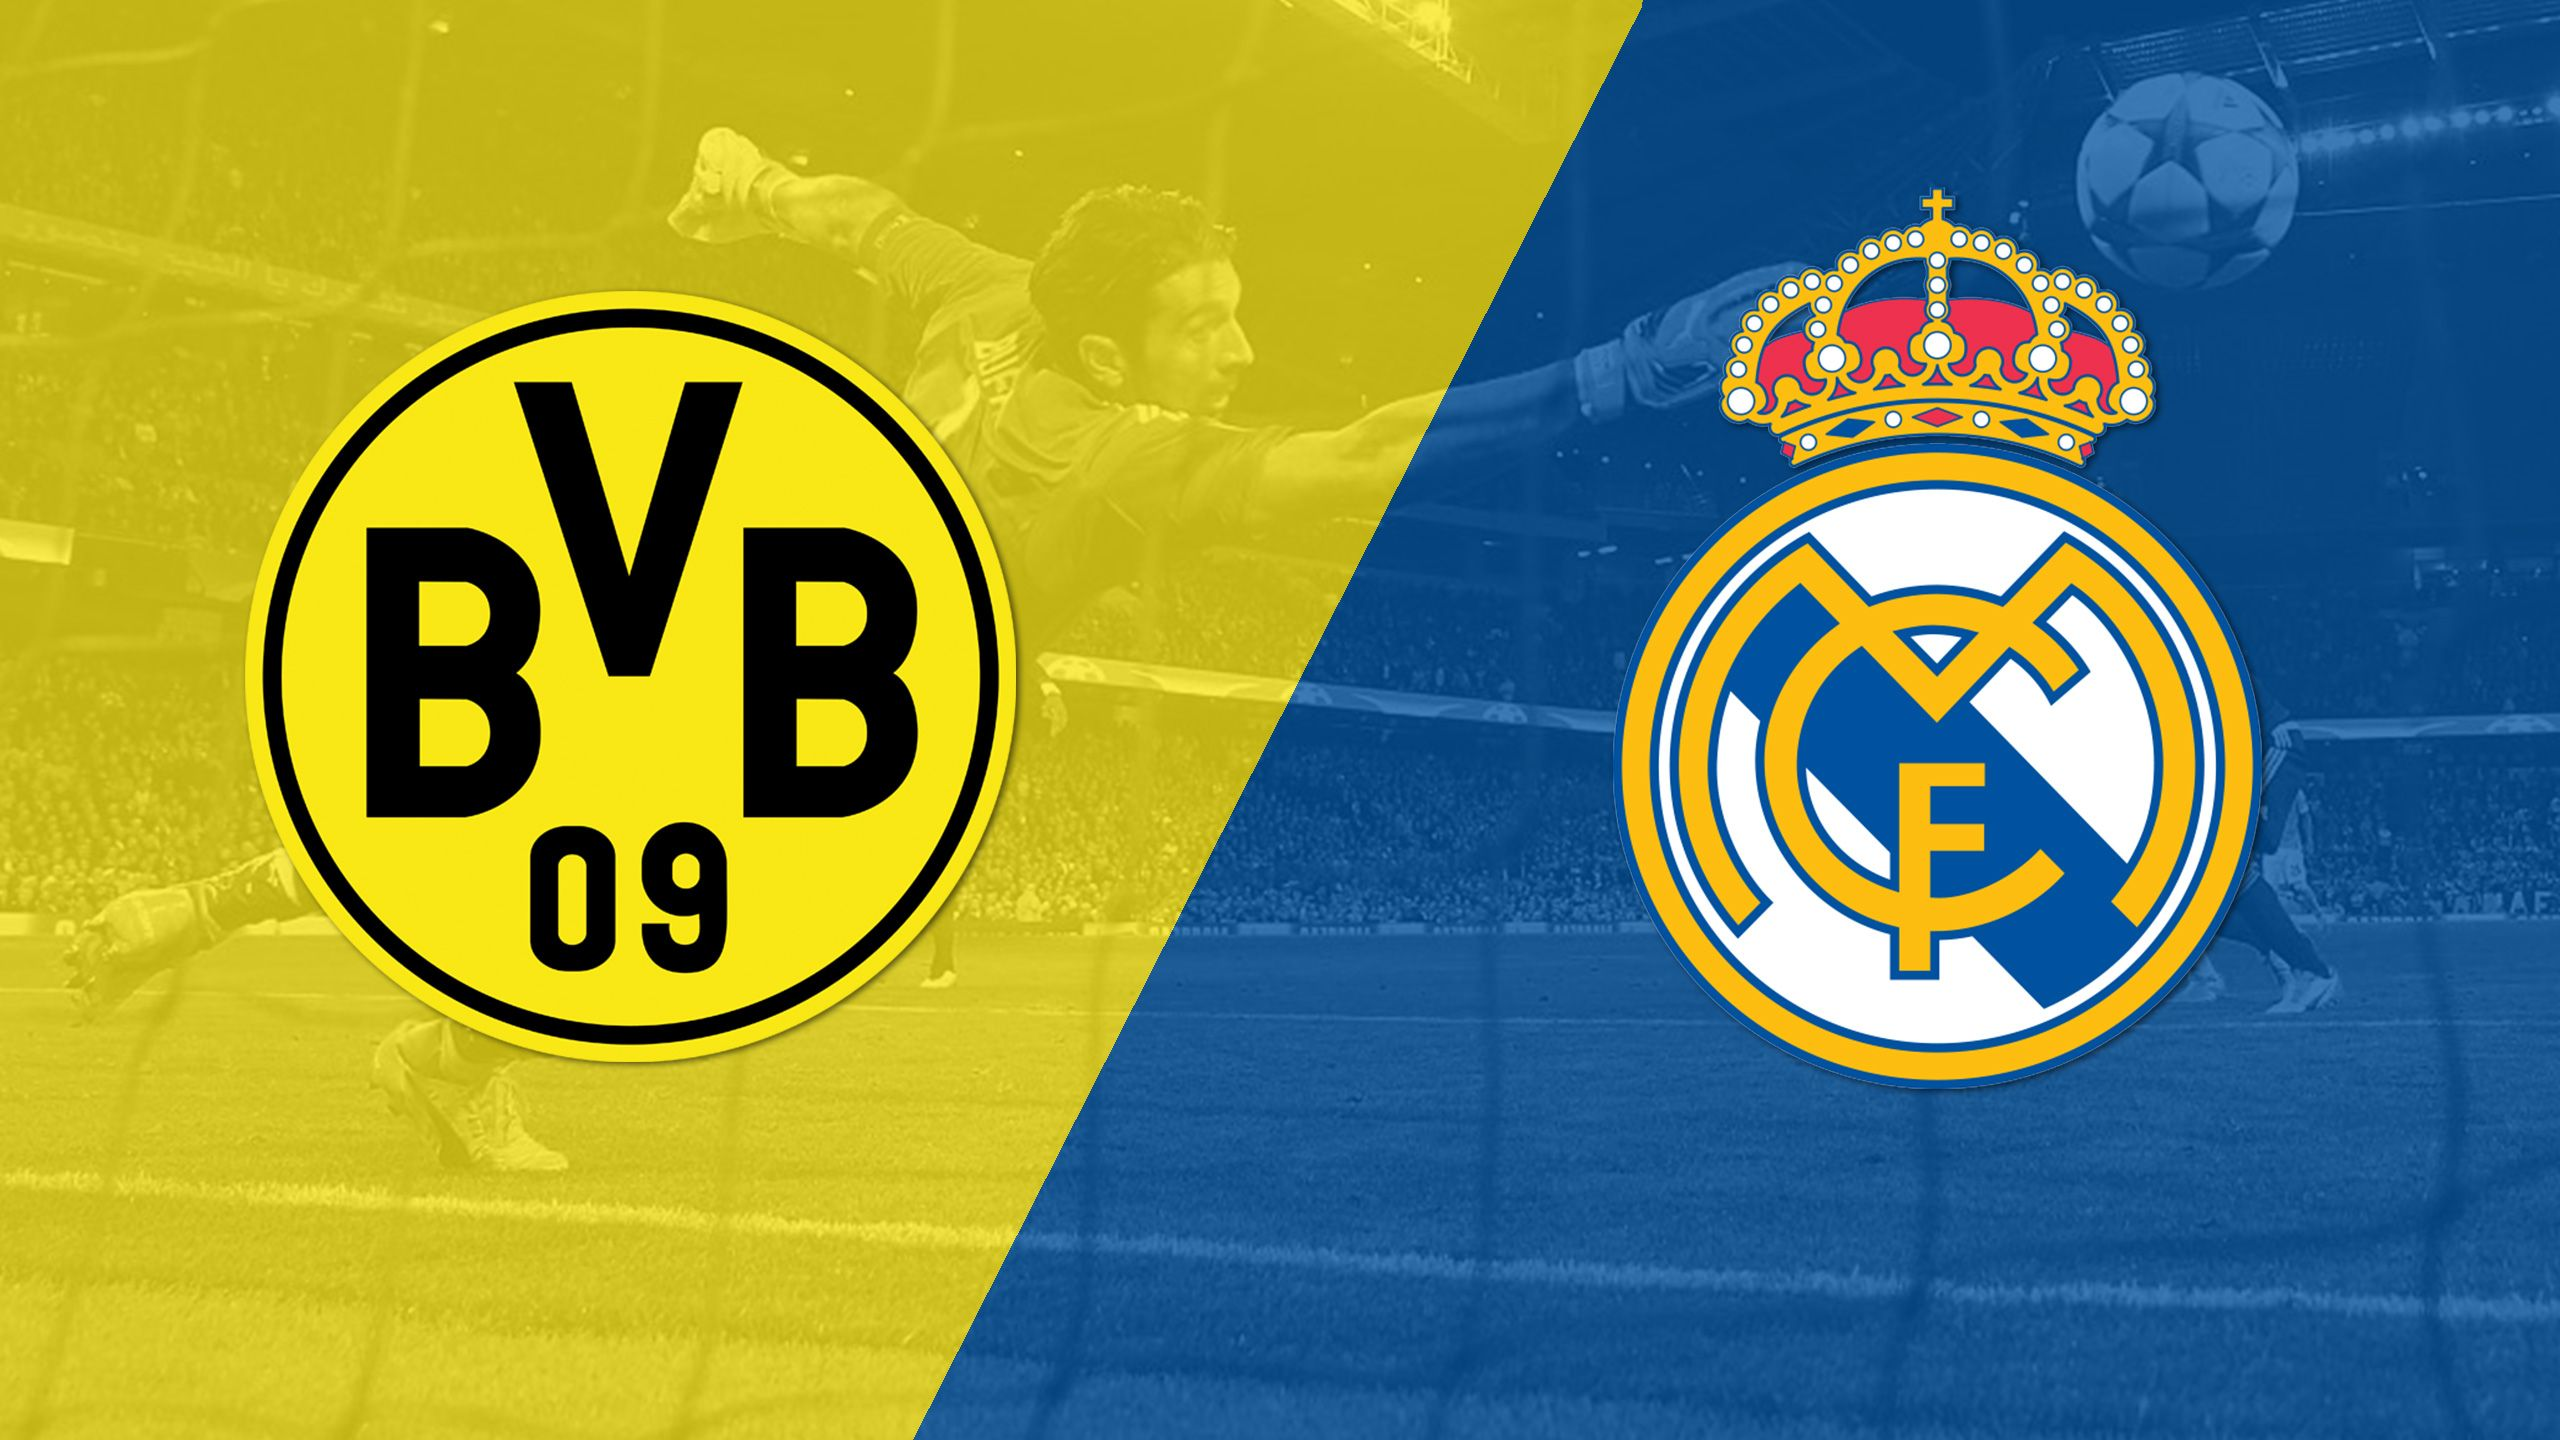 In Spanish - Borussia Dortmund vs. Real Madrid (Fase de Grupos) (UEFA Champions League)